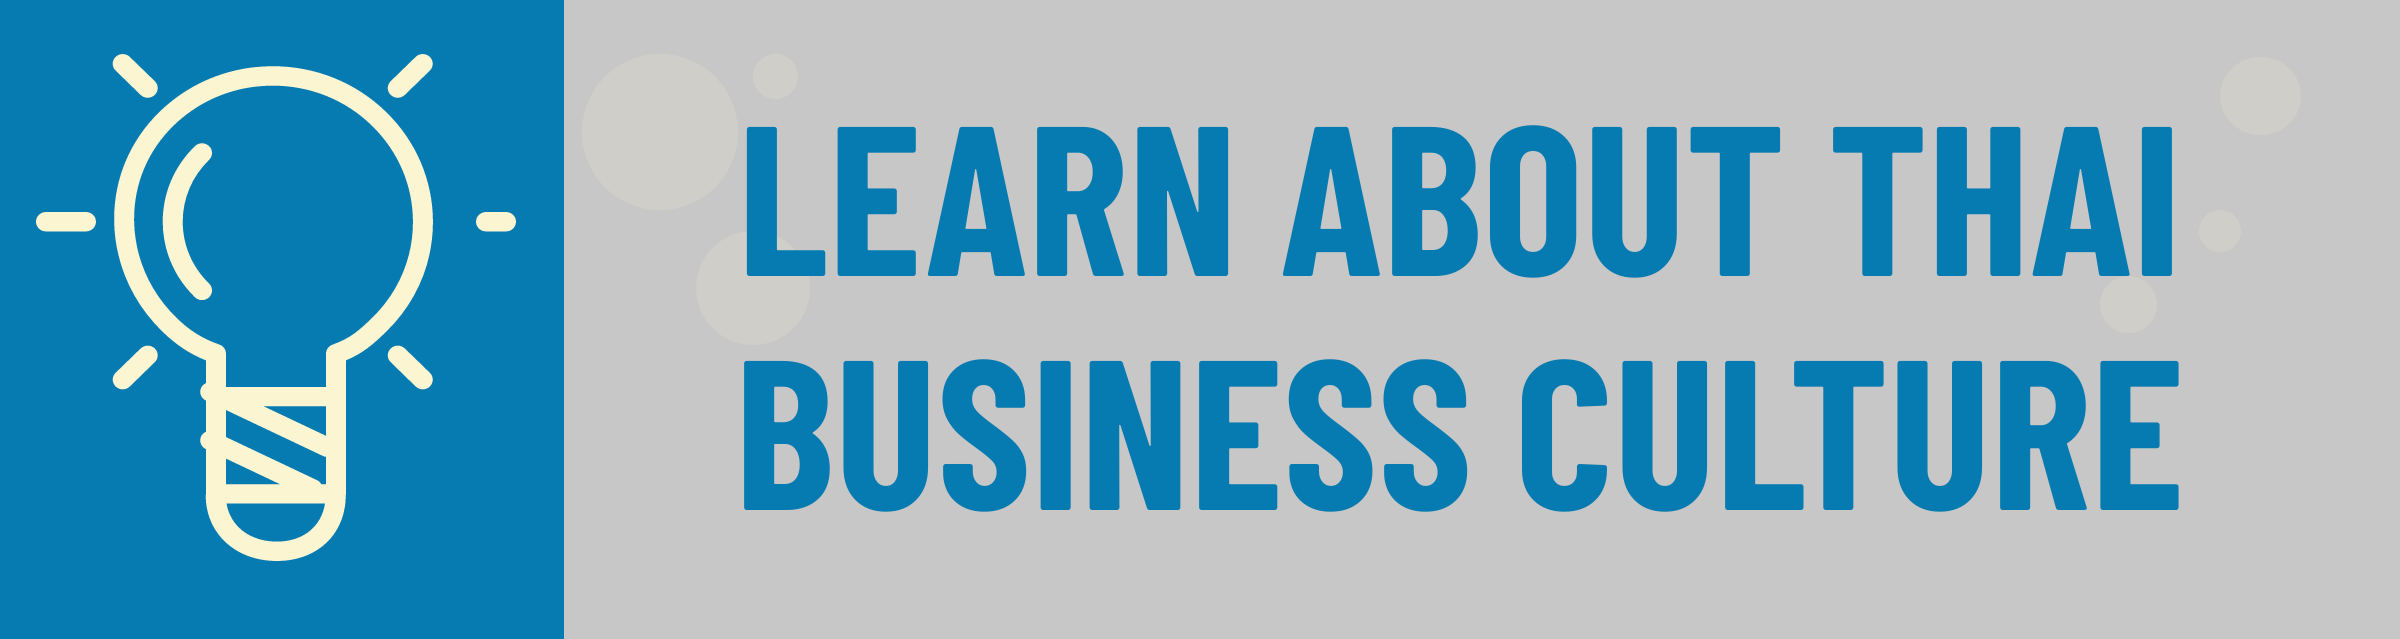 Banner: Learn About Thai Business Culture